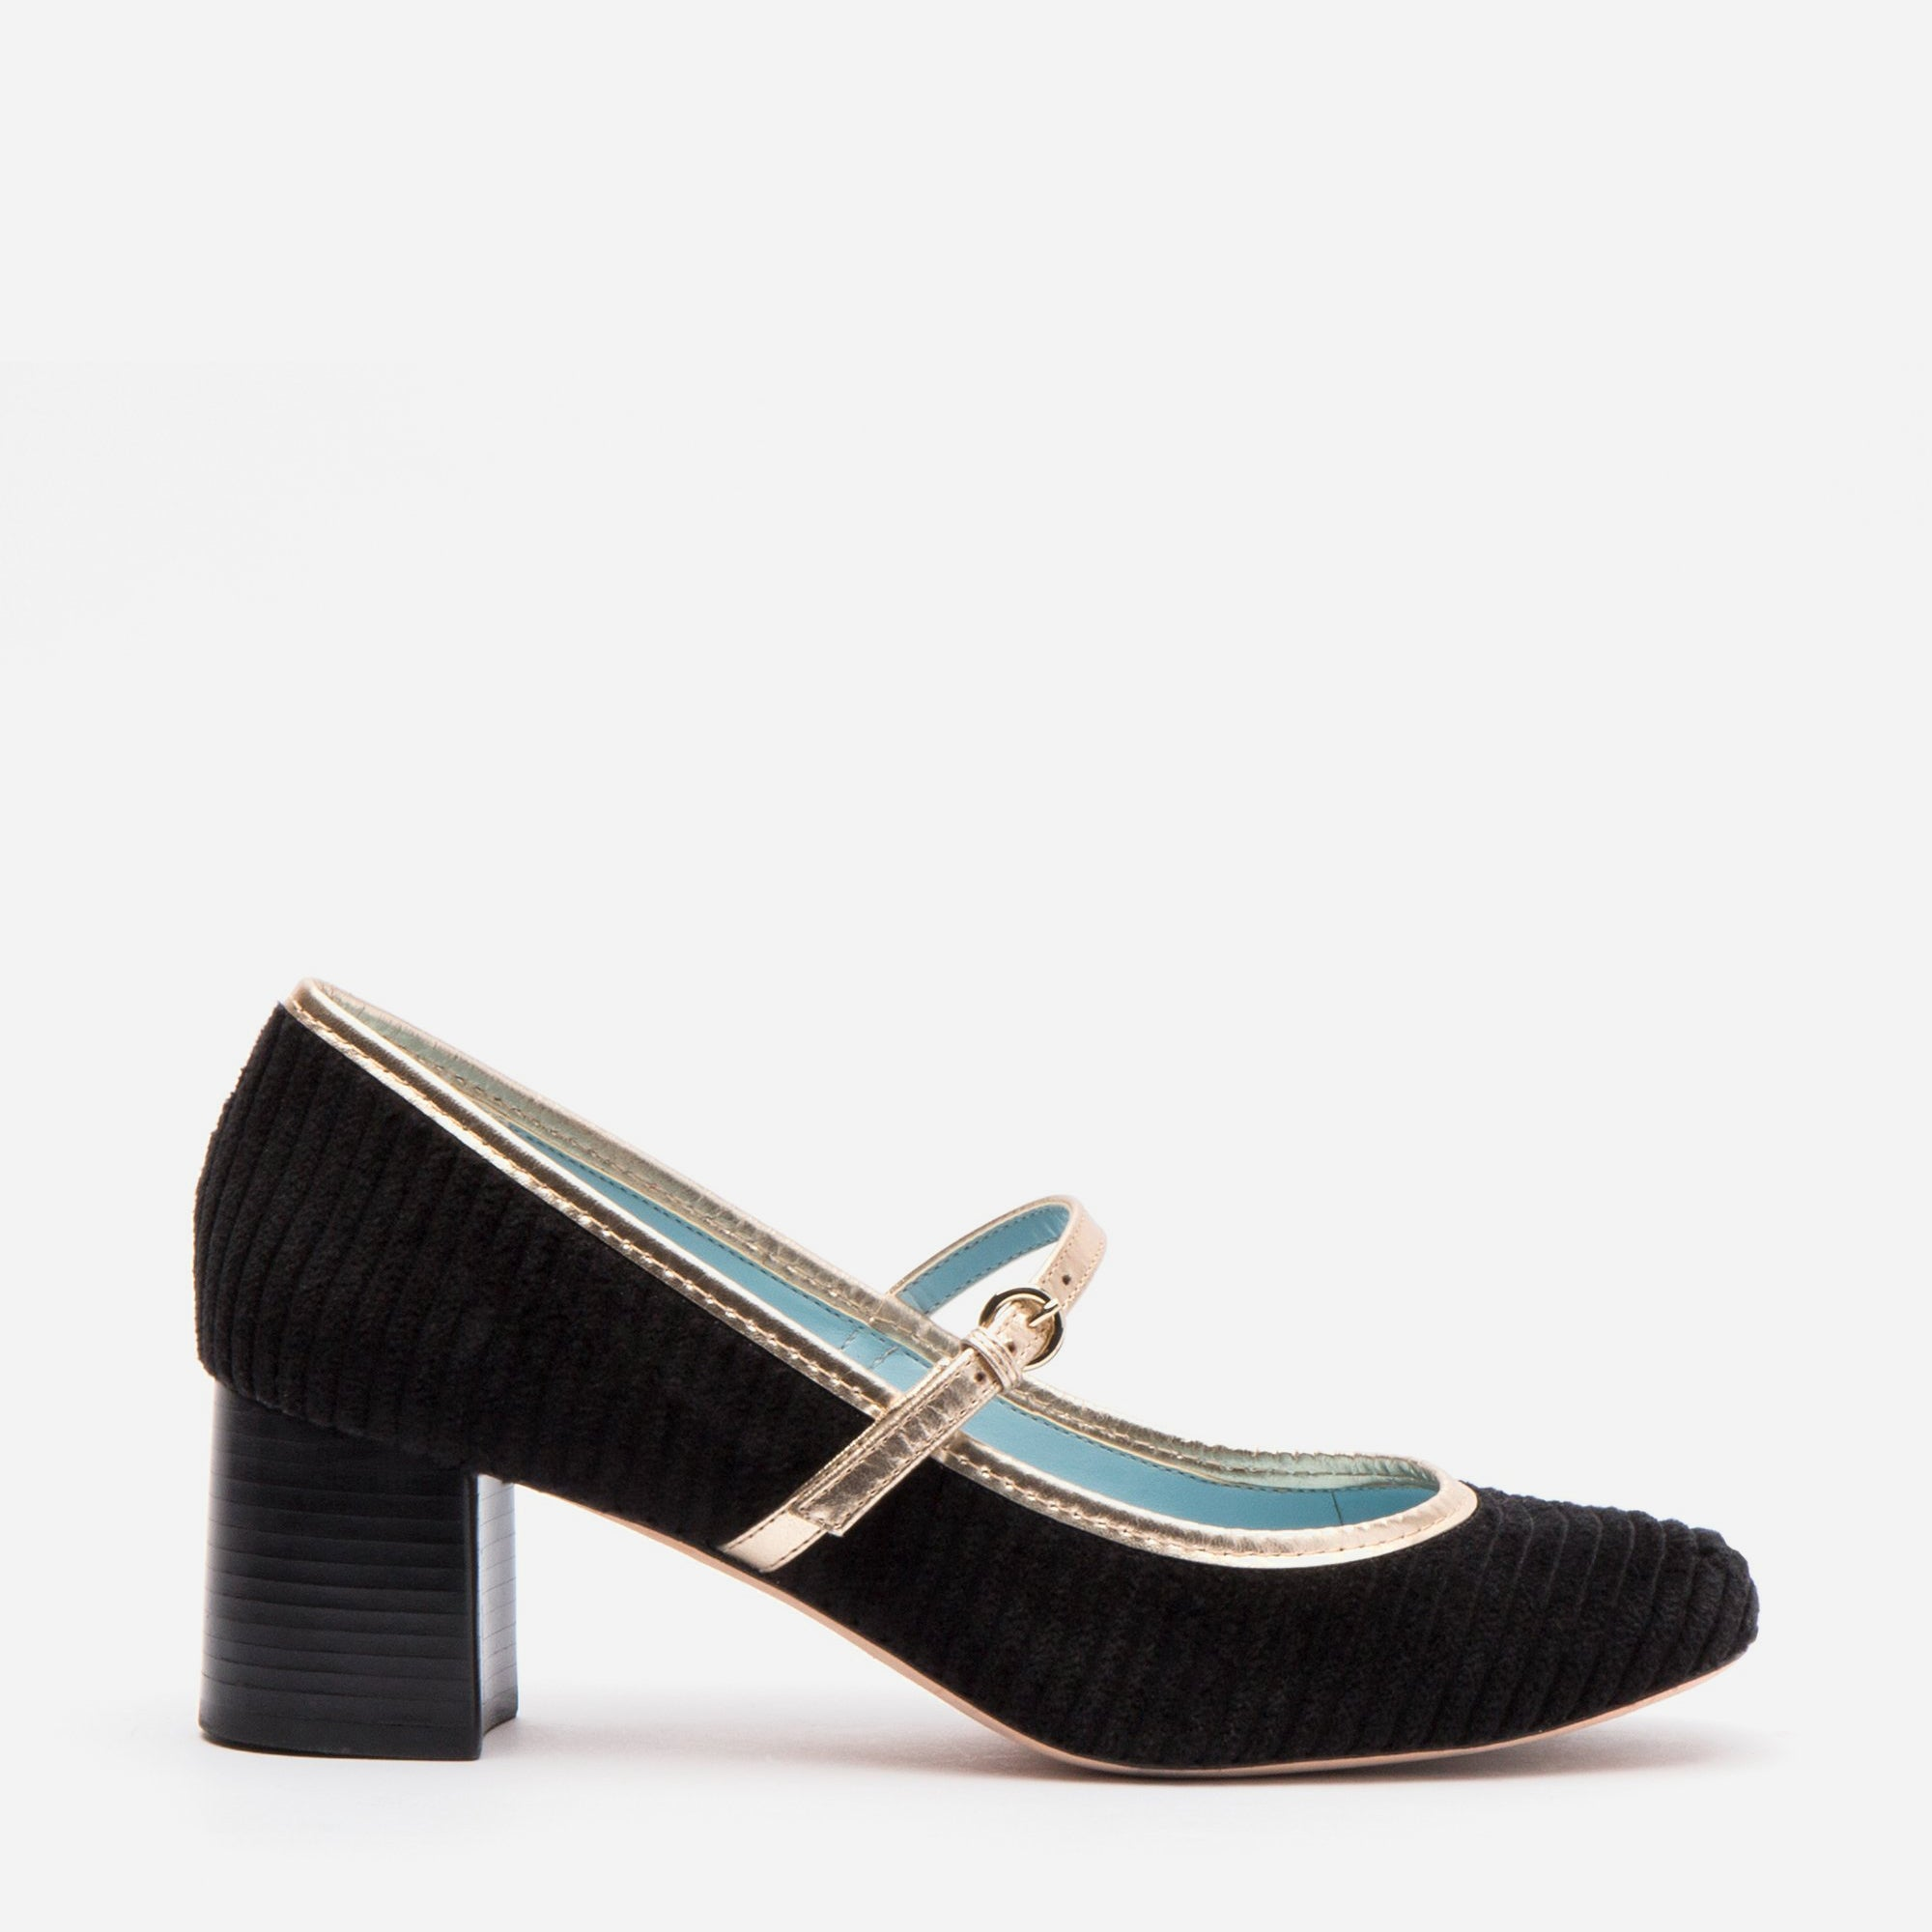 Kat Mary Jane Heels Corduroy Black - Frances Valentine